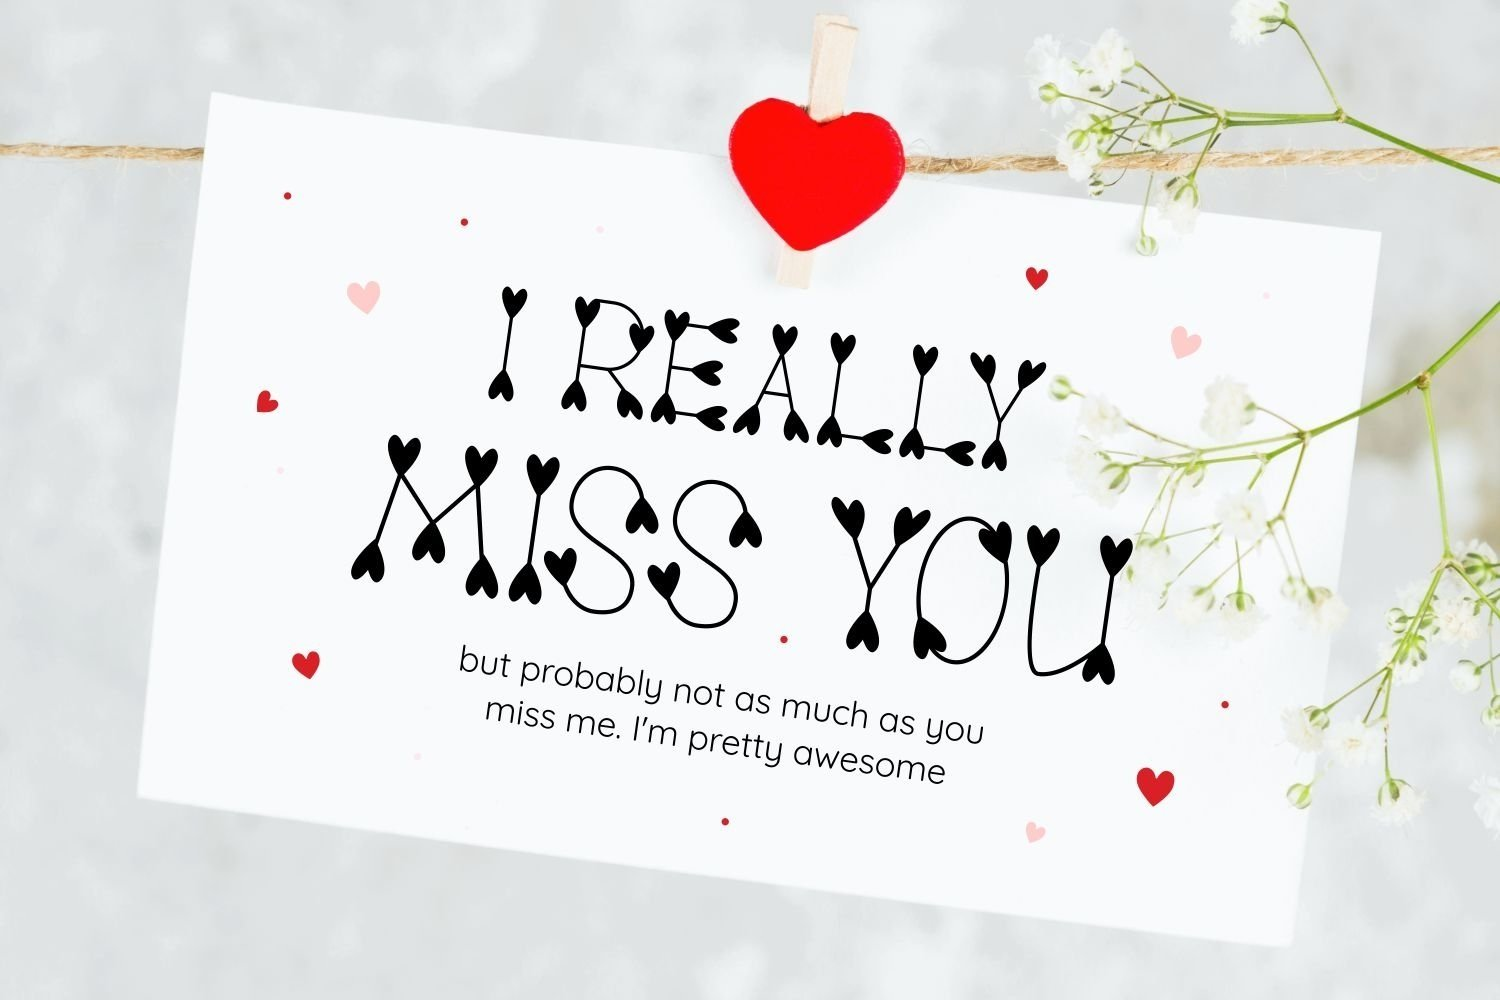 Web Font Truelove - Cute and Lovely Display Typeface example image 3